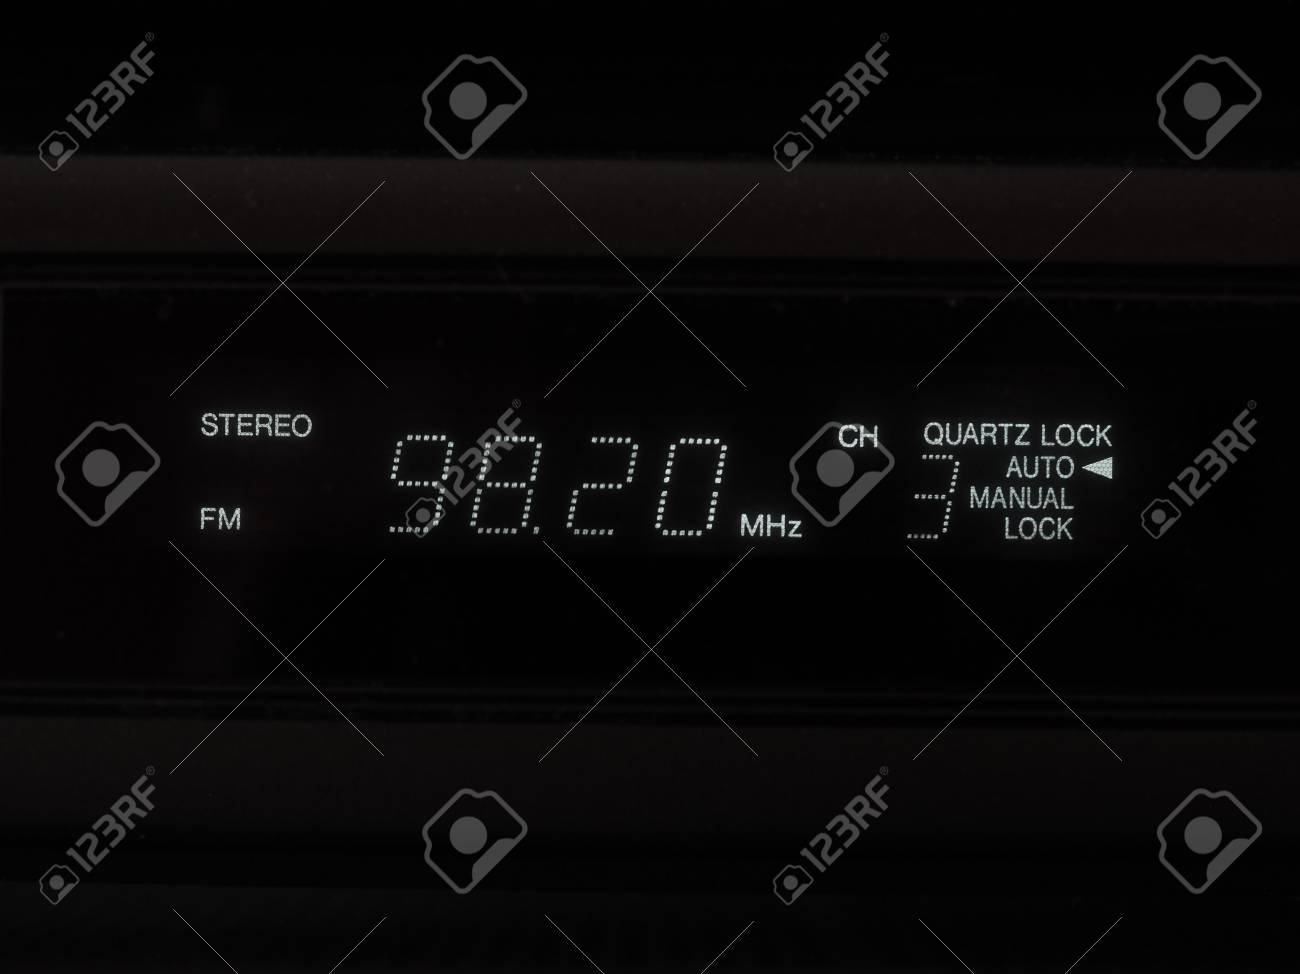 stereo FM radio tuner lcd display showing frequency of tuned